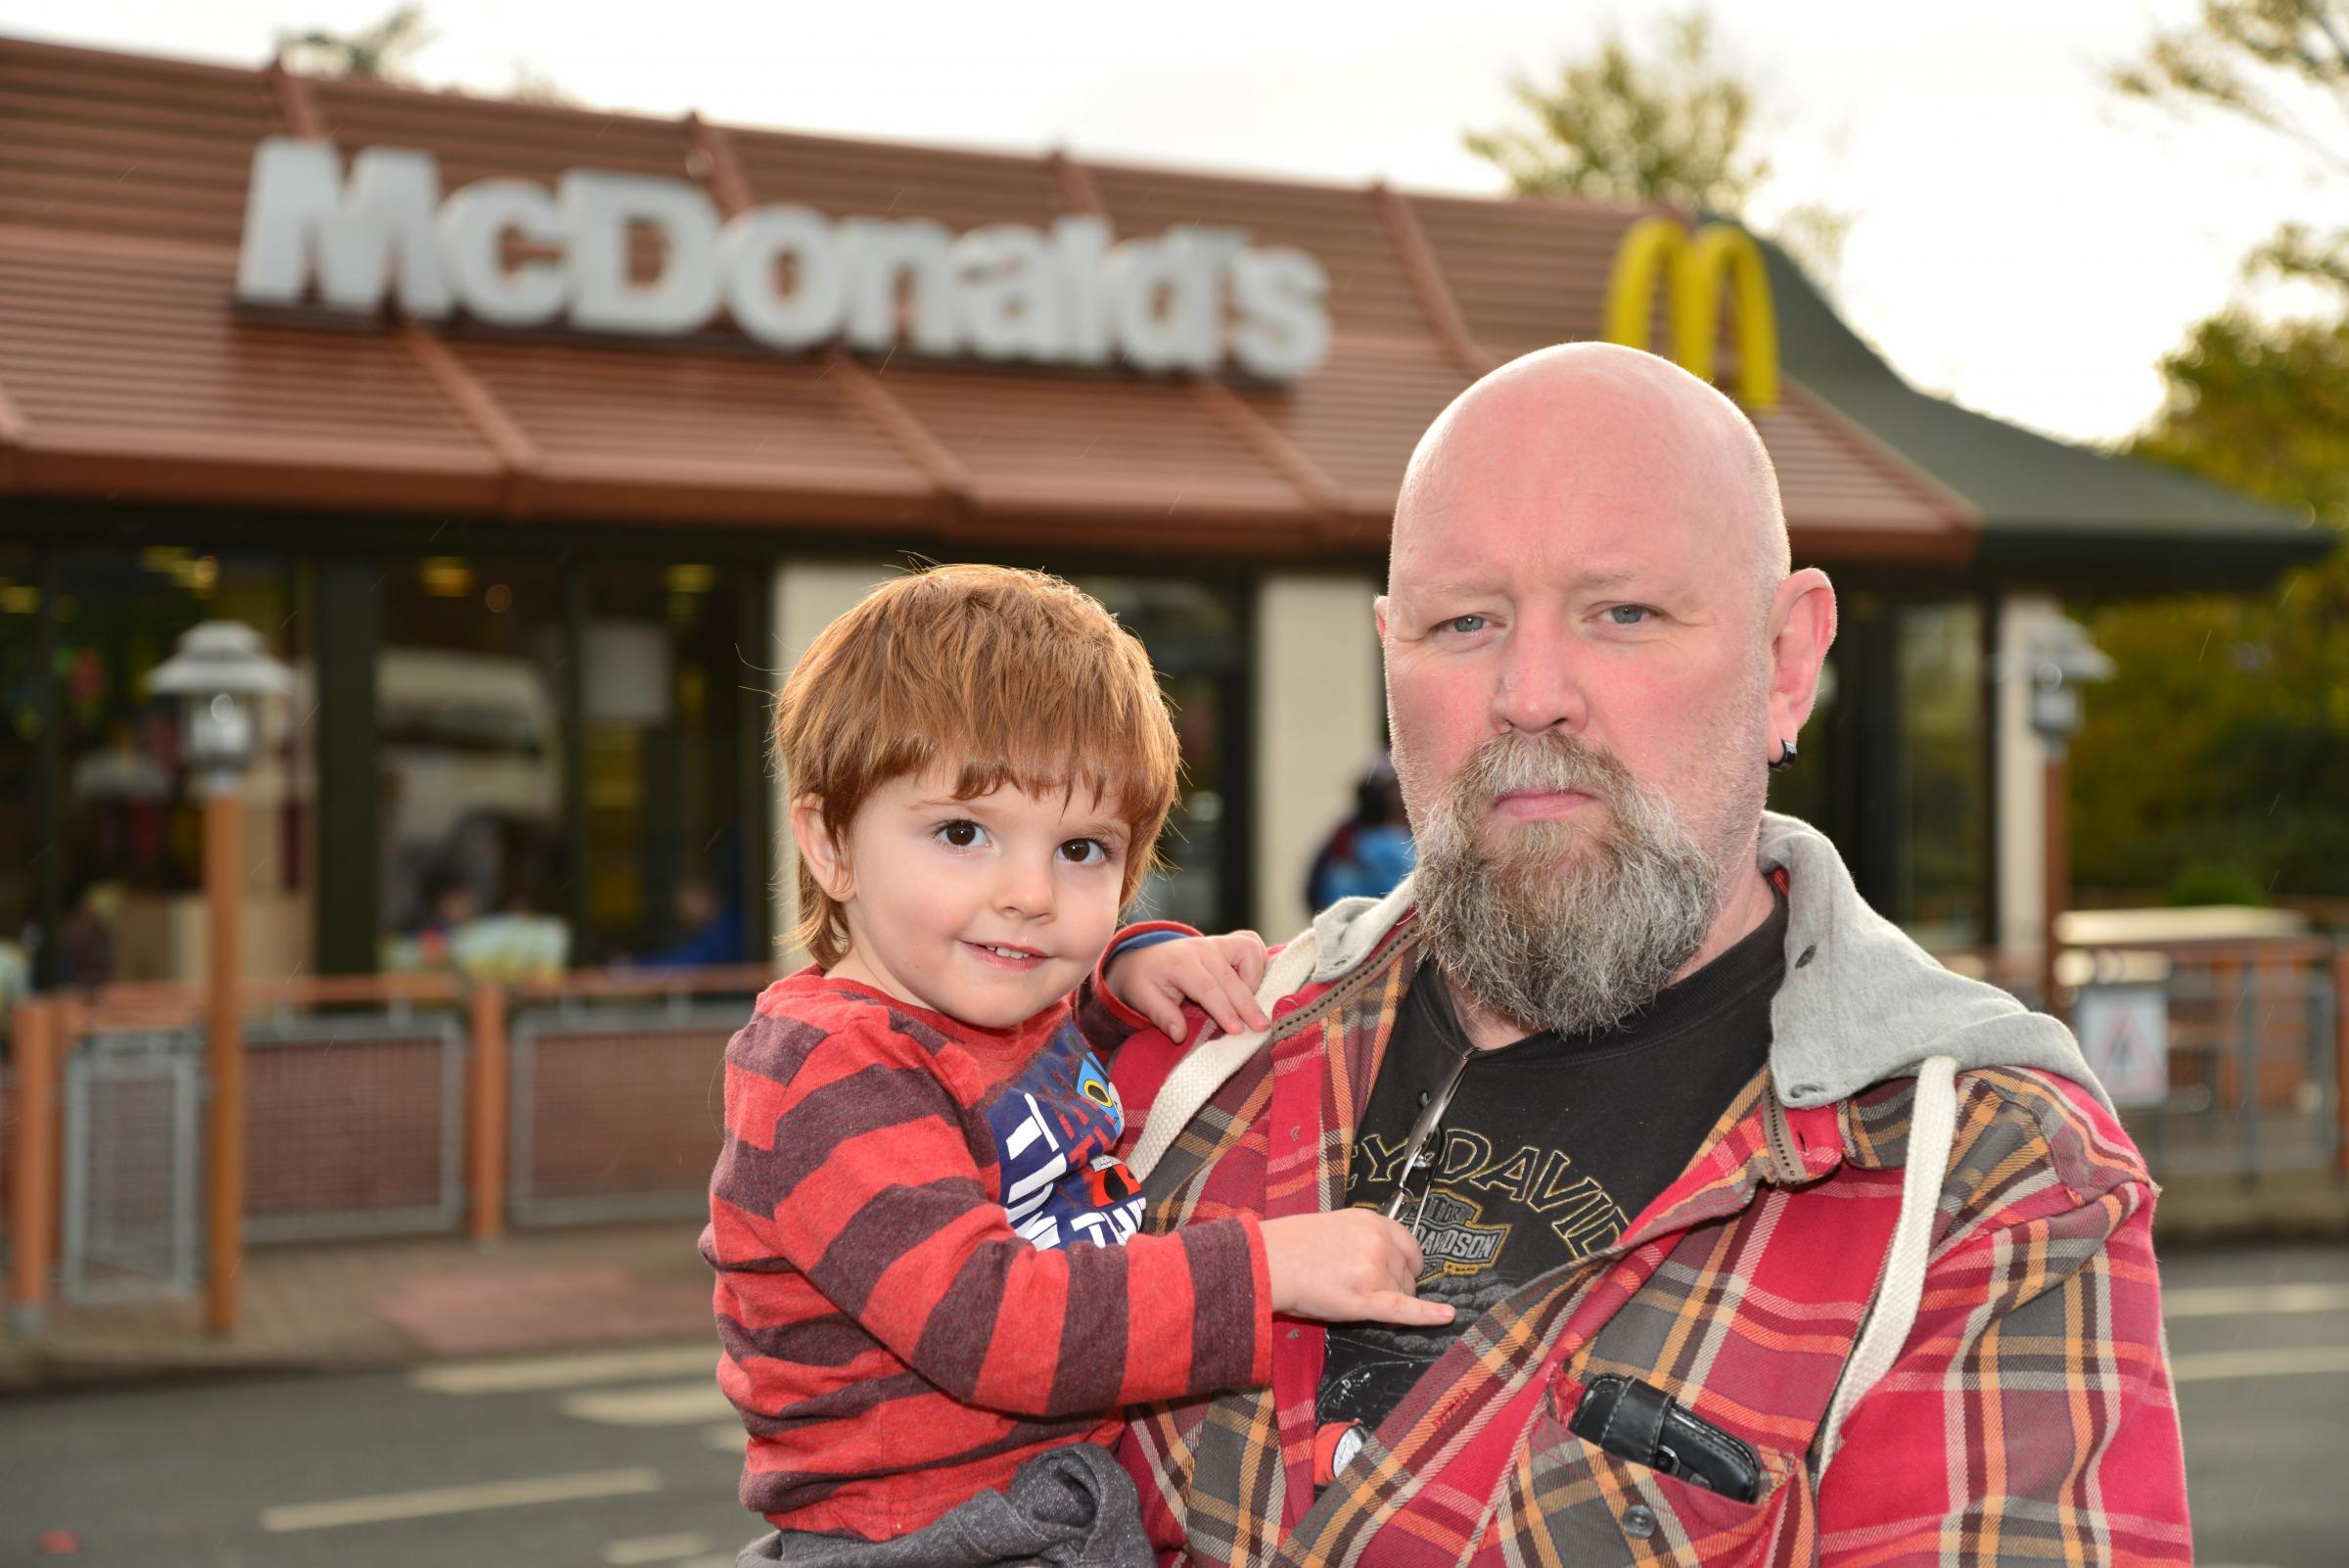 McDonald's sorry over 'disgusting' music played at Haverfordwest restaurant